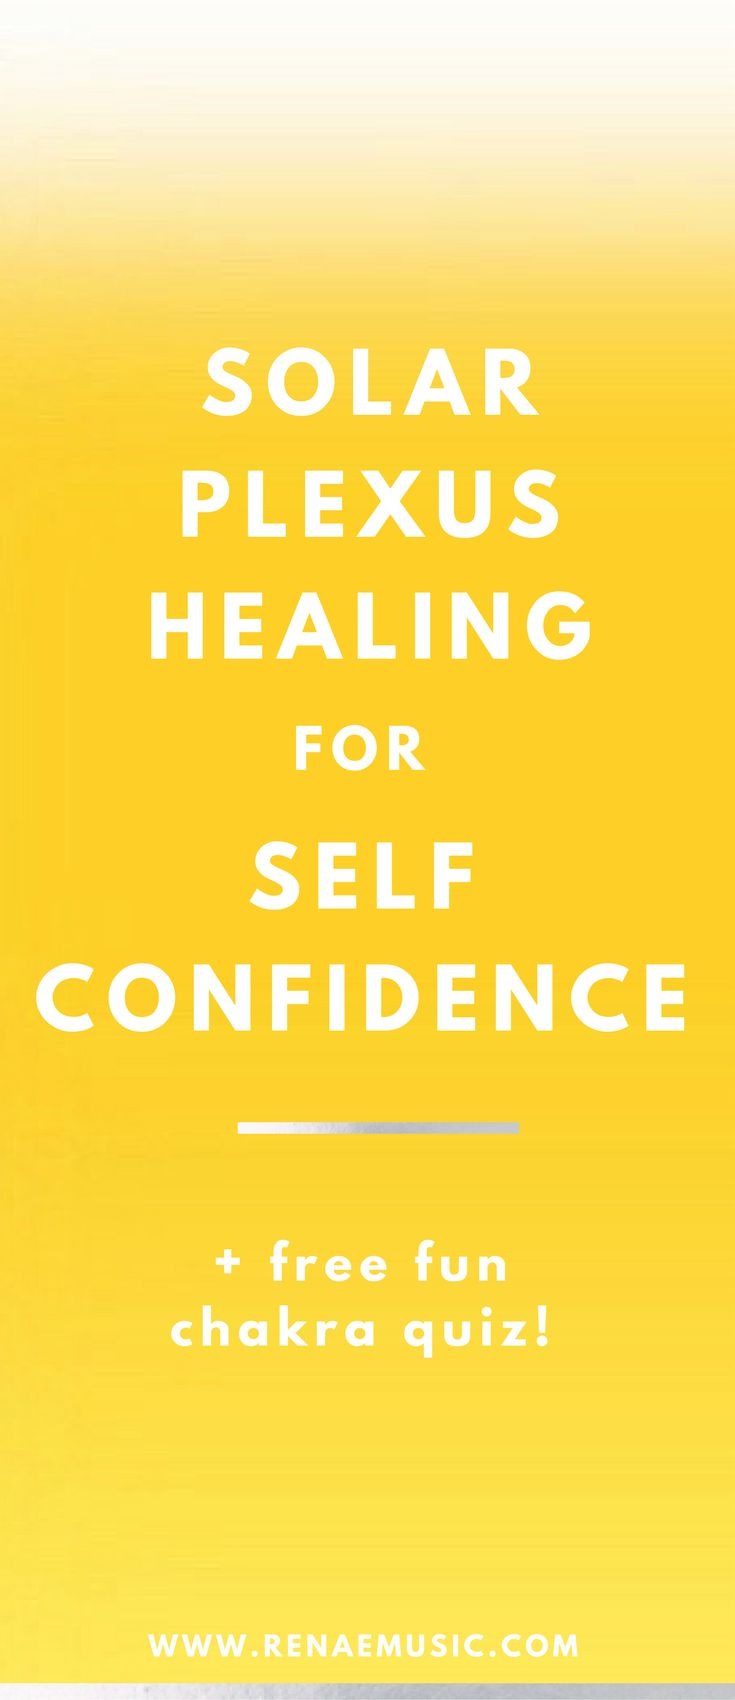 Self confidence tips / solar plexus healing for self confidence / Chakra cleanse, love yourself, self care routine, self care for women, self care worksheet, meditation for beginners, finding purpose, root chakra, third eye chakra, festival fashion, yogini, sacral chakra, throat chakra, heart chakra, chakras for beginners, meditation for beginners. #motivationmonday #fashion #selflove #meditation #yoga